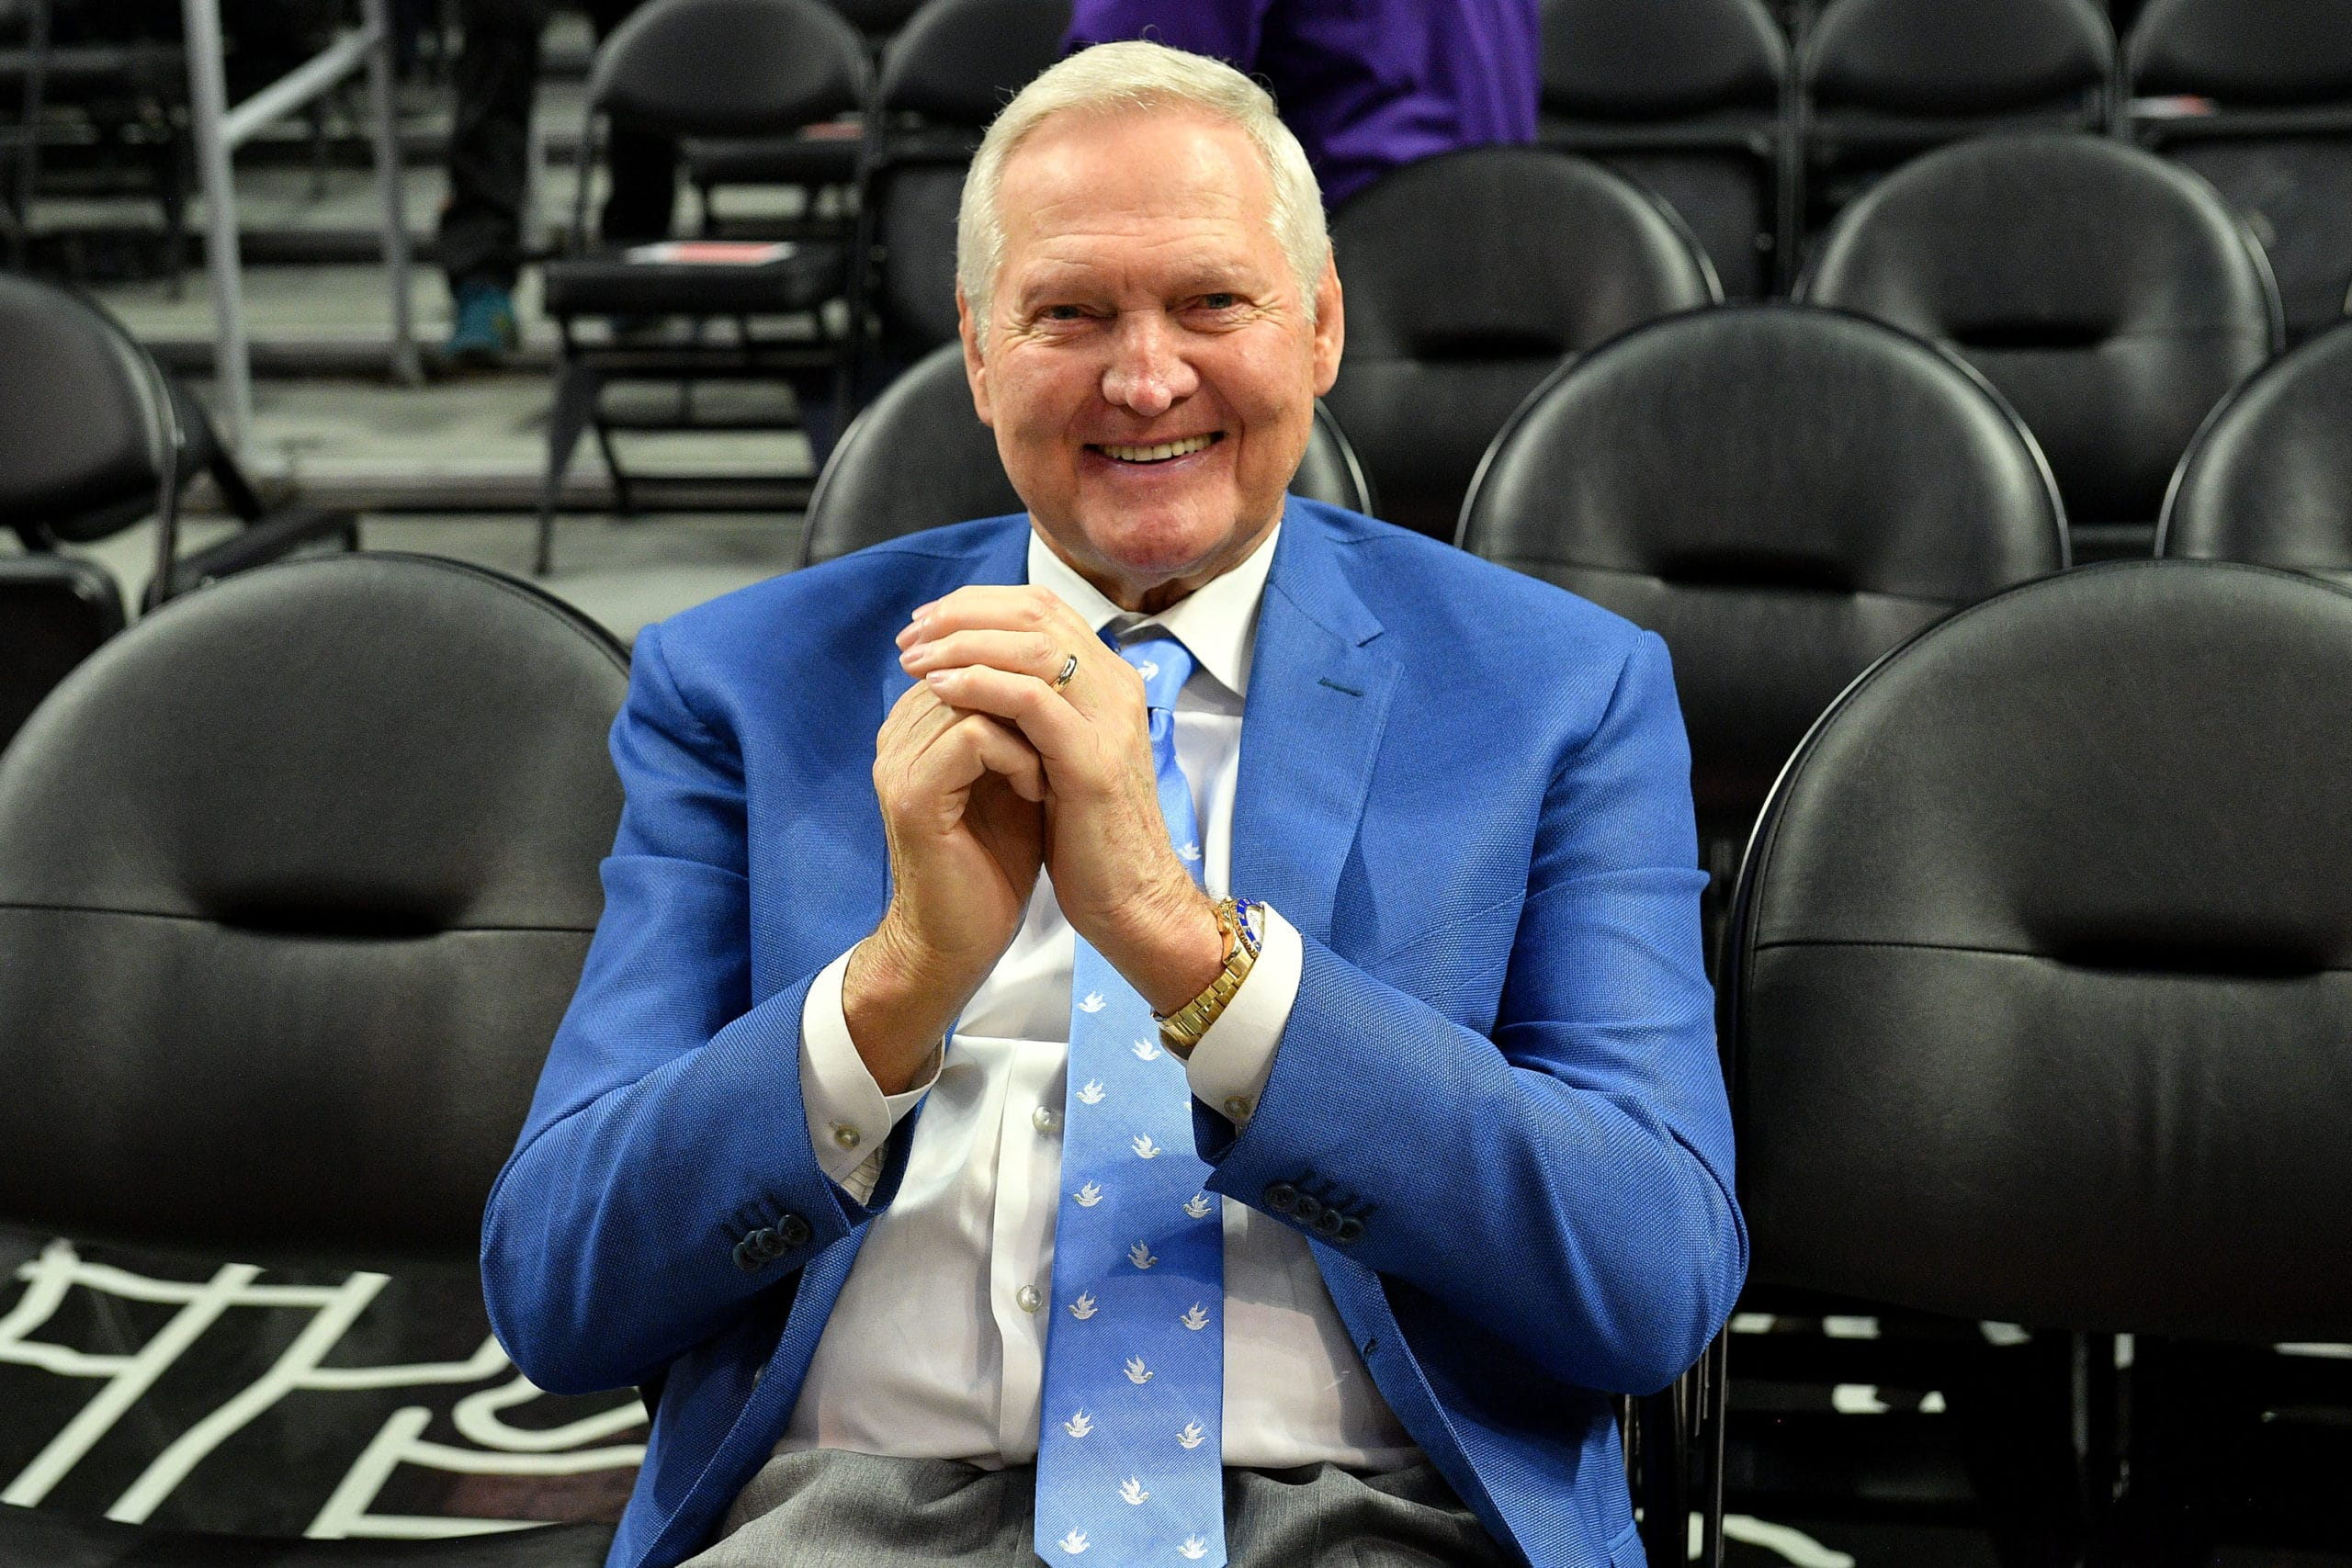 jerry-west-rips-jeanie-buss-high-5-lakers-rankings-1-of-the-most-offensive-things.jpg